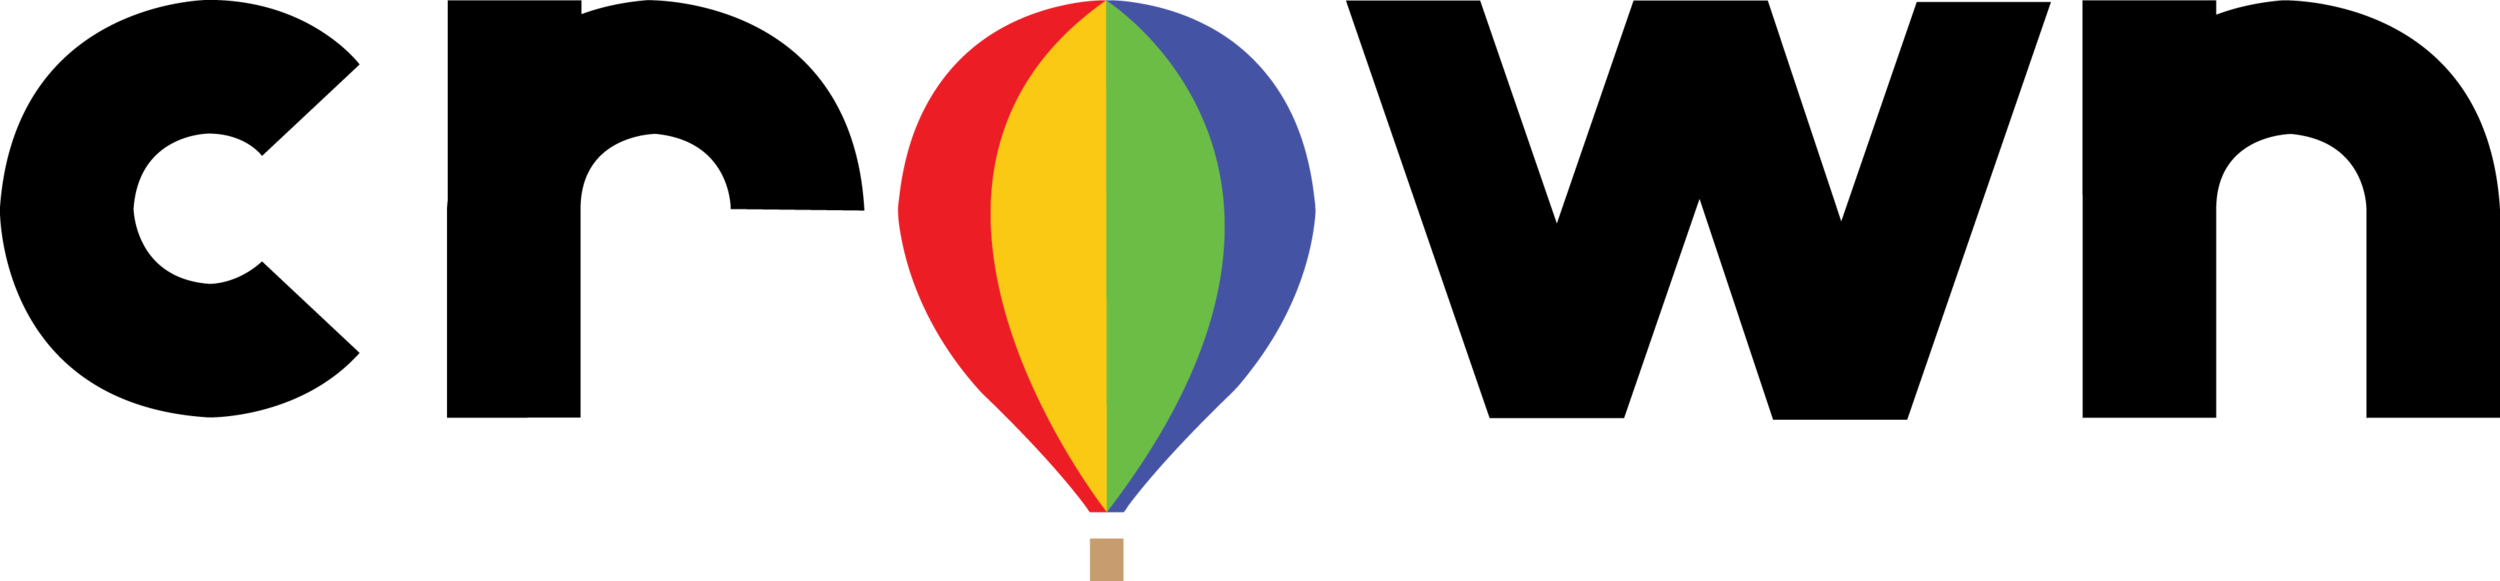 Balloon.Logo.Only.png